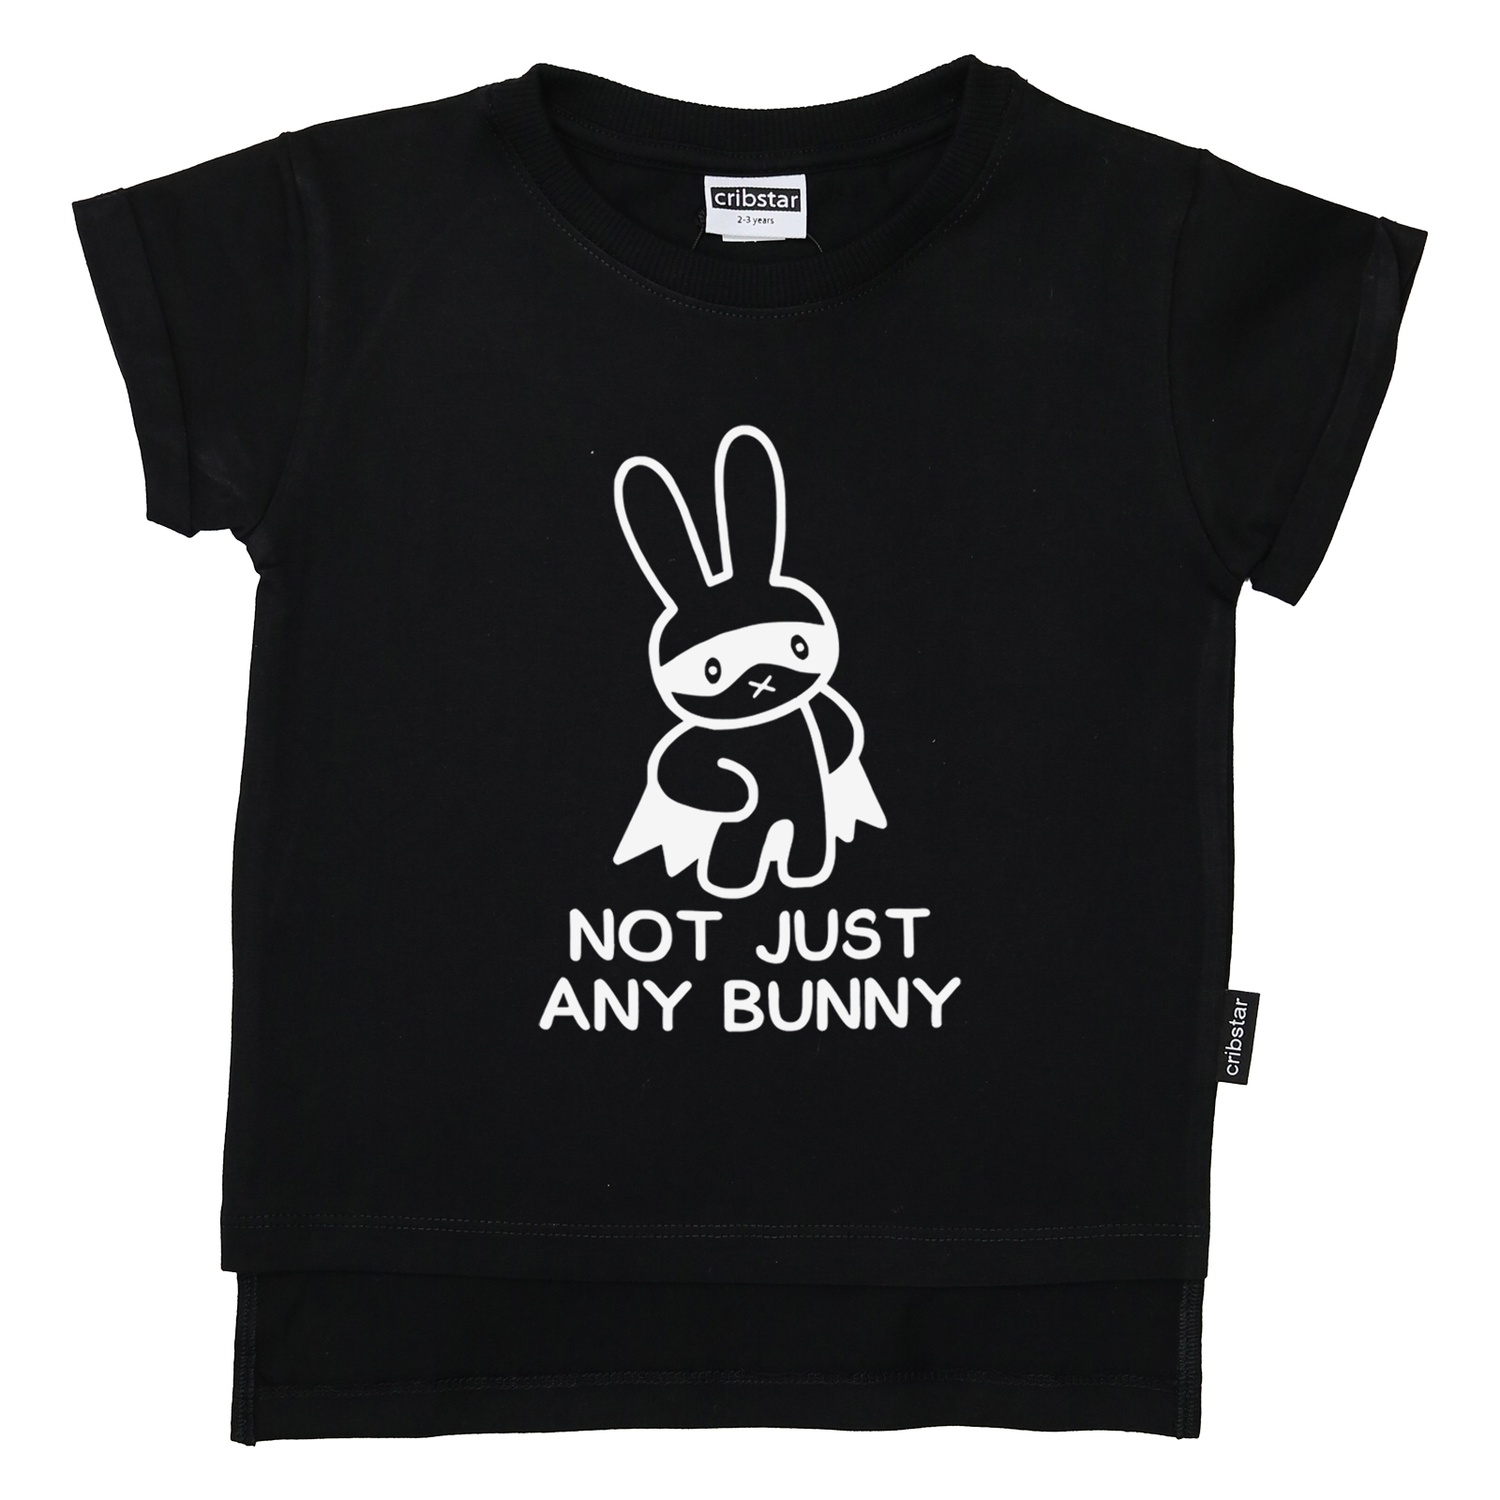 Cribstar Black Not Just Any Bunny T-Shirt